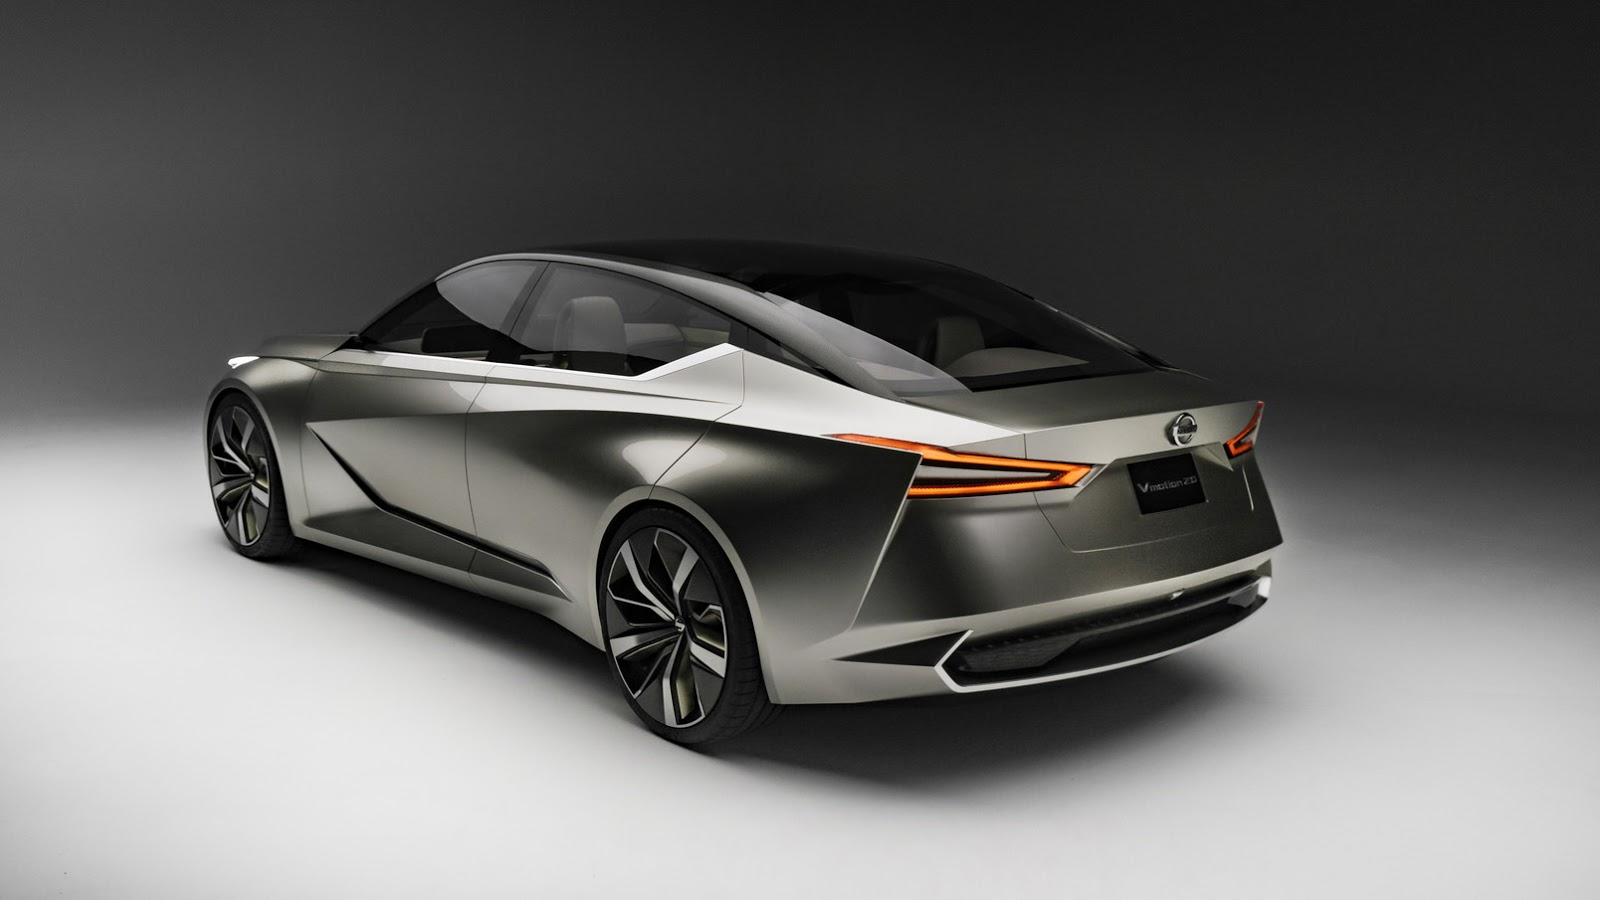 Nissan Vmotion 2.0 concept (32)